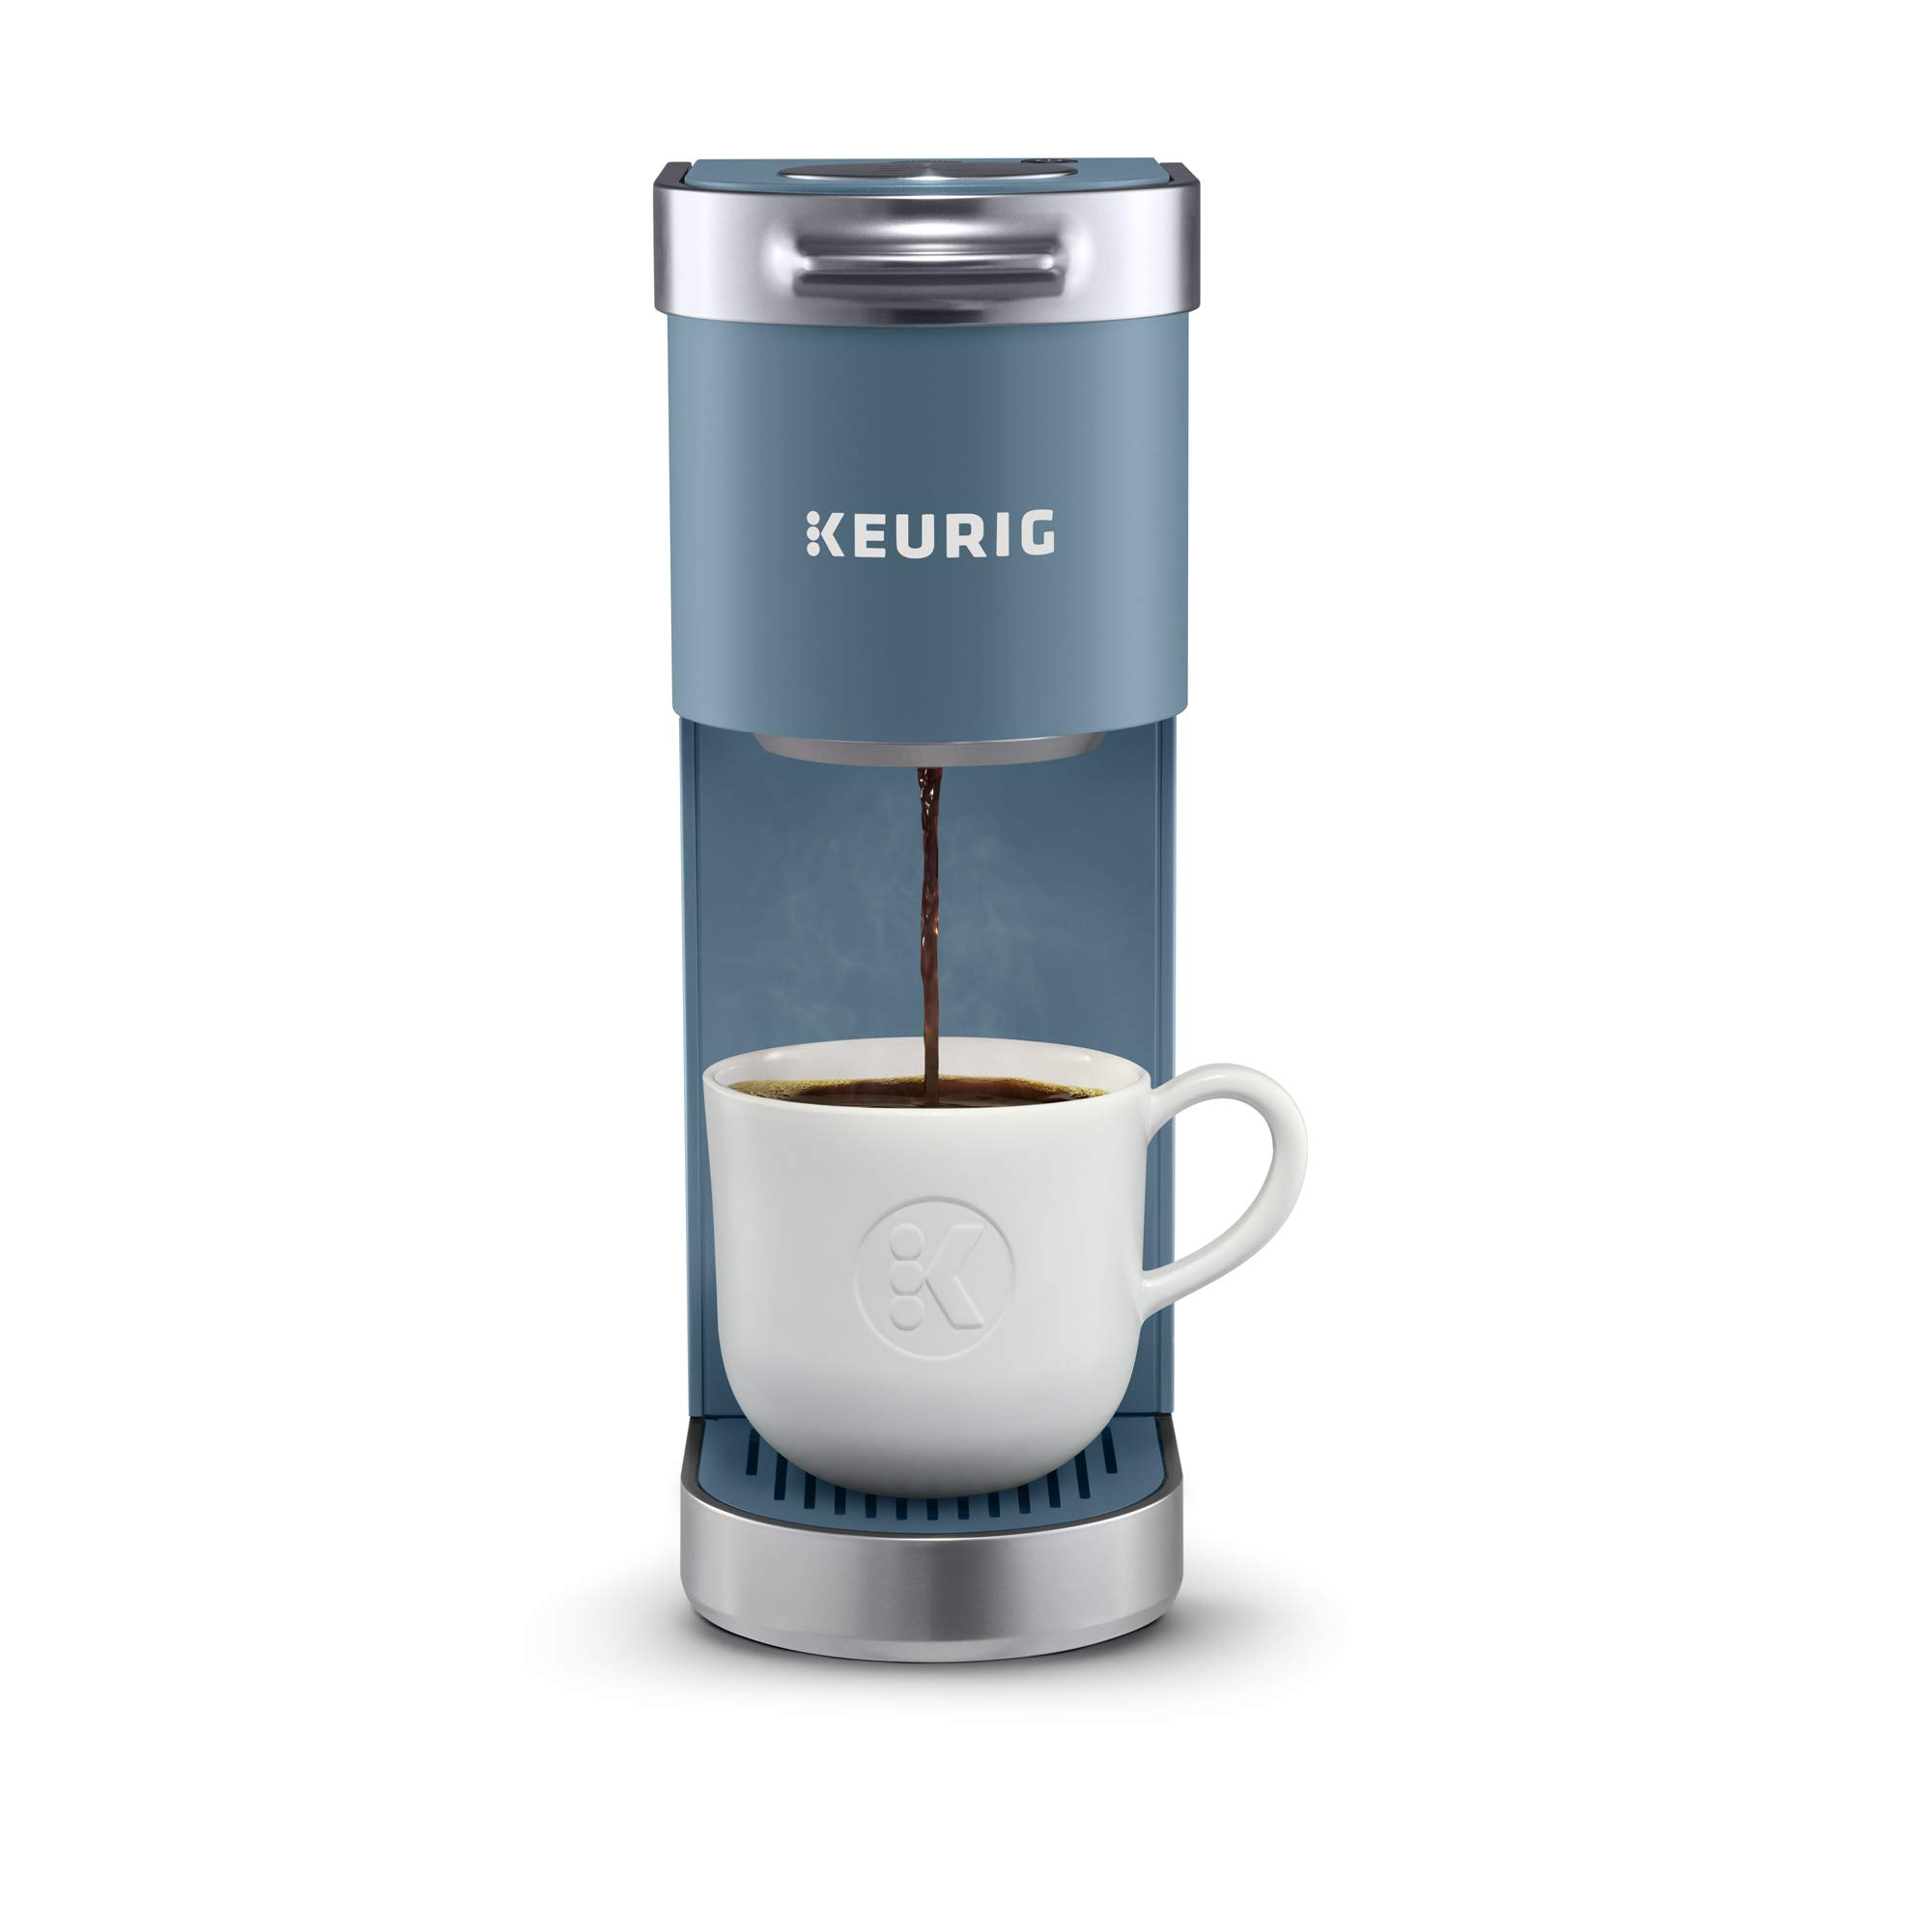 Keurig K-Mini Plus Coffee Maker, Single Serve K-Cup Pod Coffee Brewer, Comes With 6 To 12 Oz. Brew Size, K-Cup Pod Storage, And Travel Mug Friendly, Evening Teal by Keurig